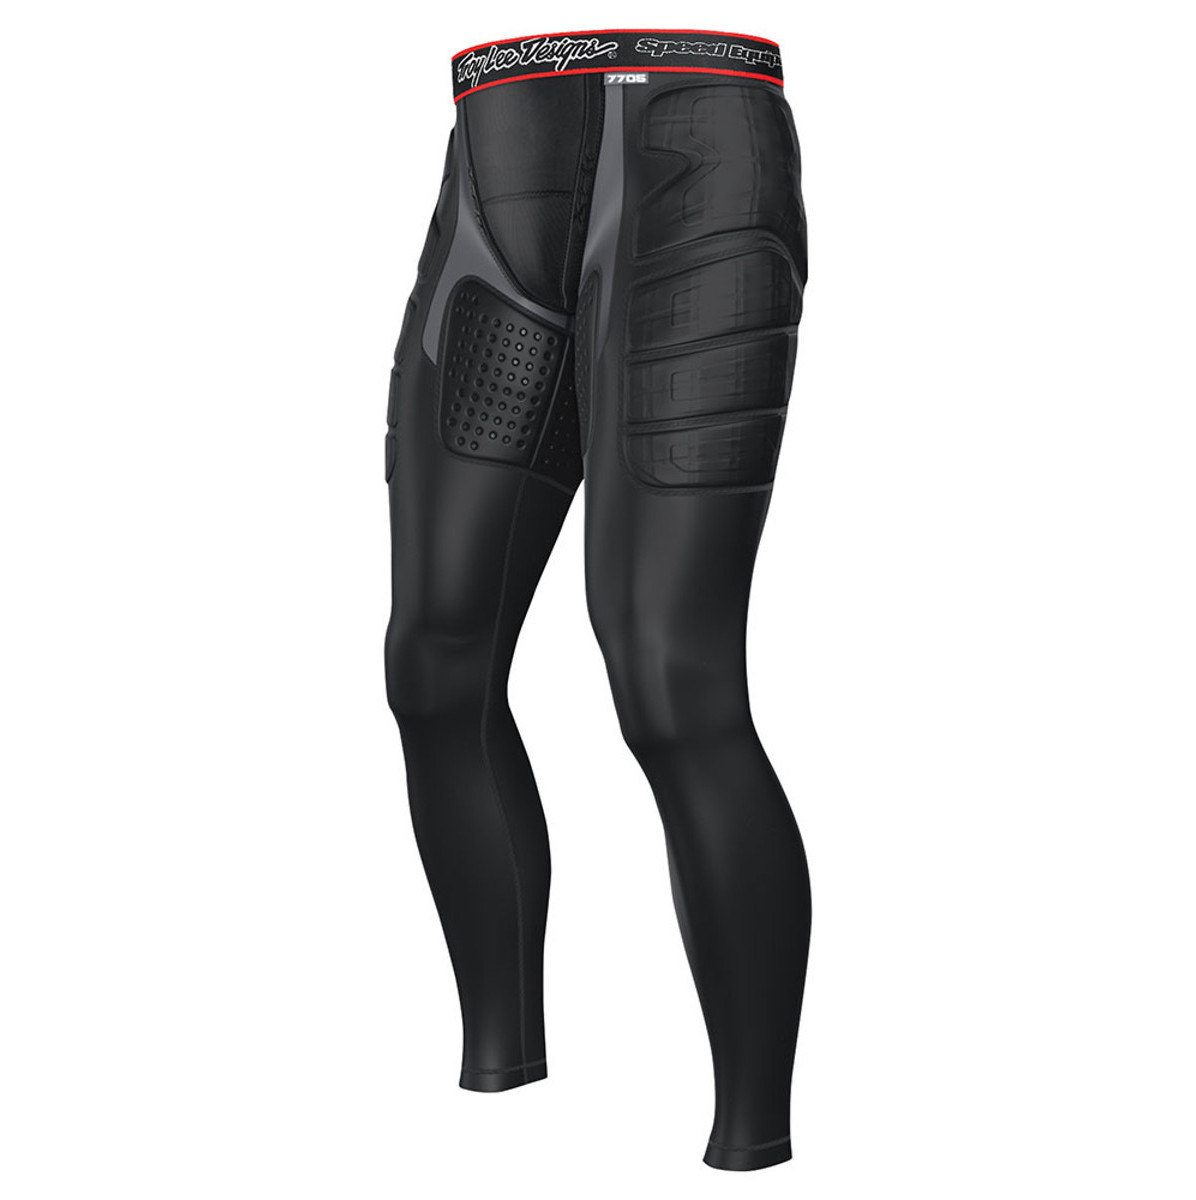 TLD 7705 Ultra Protective Pant